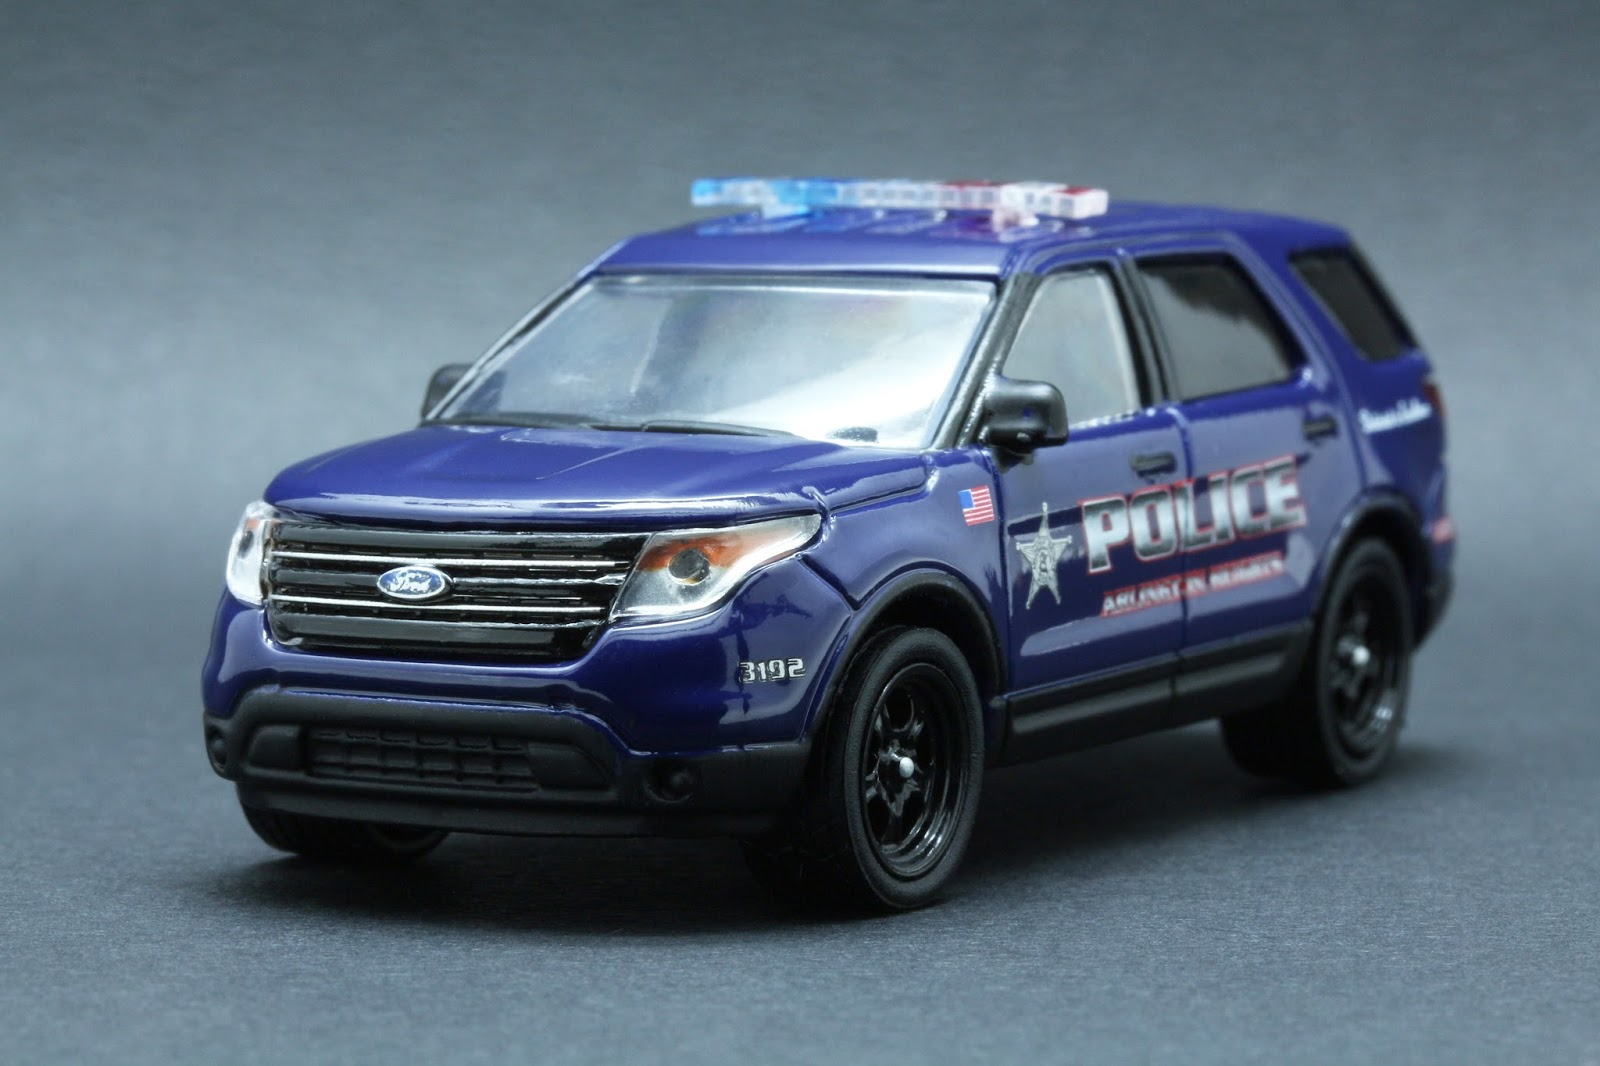 2014 ford explorer arlington heights il police